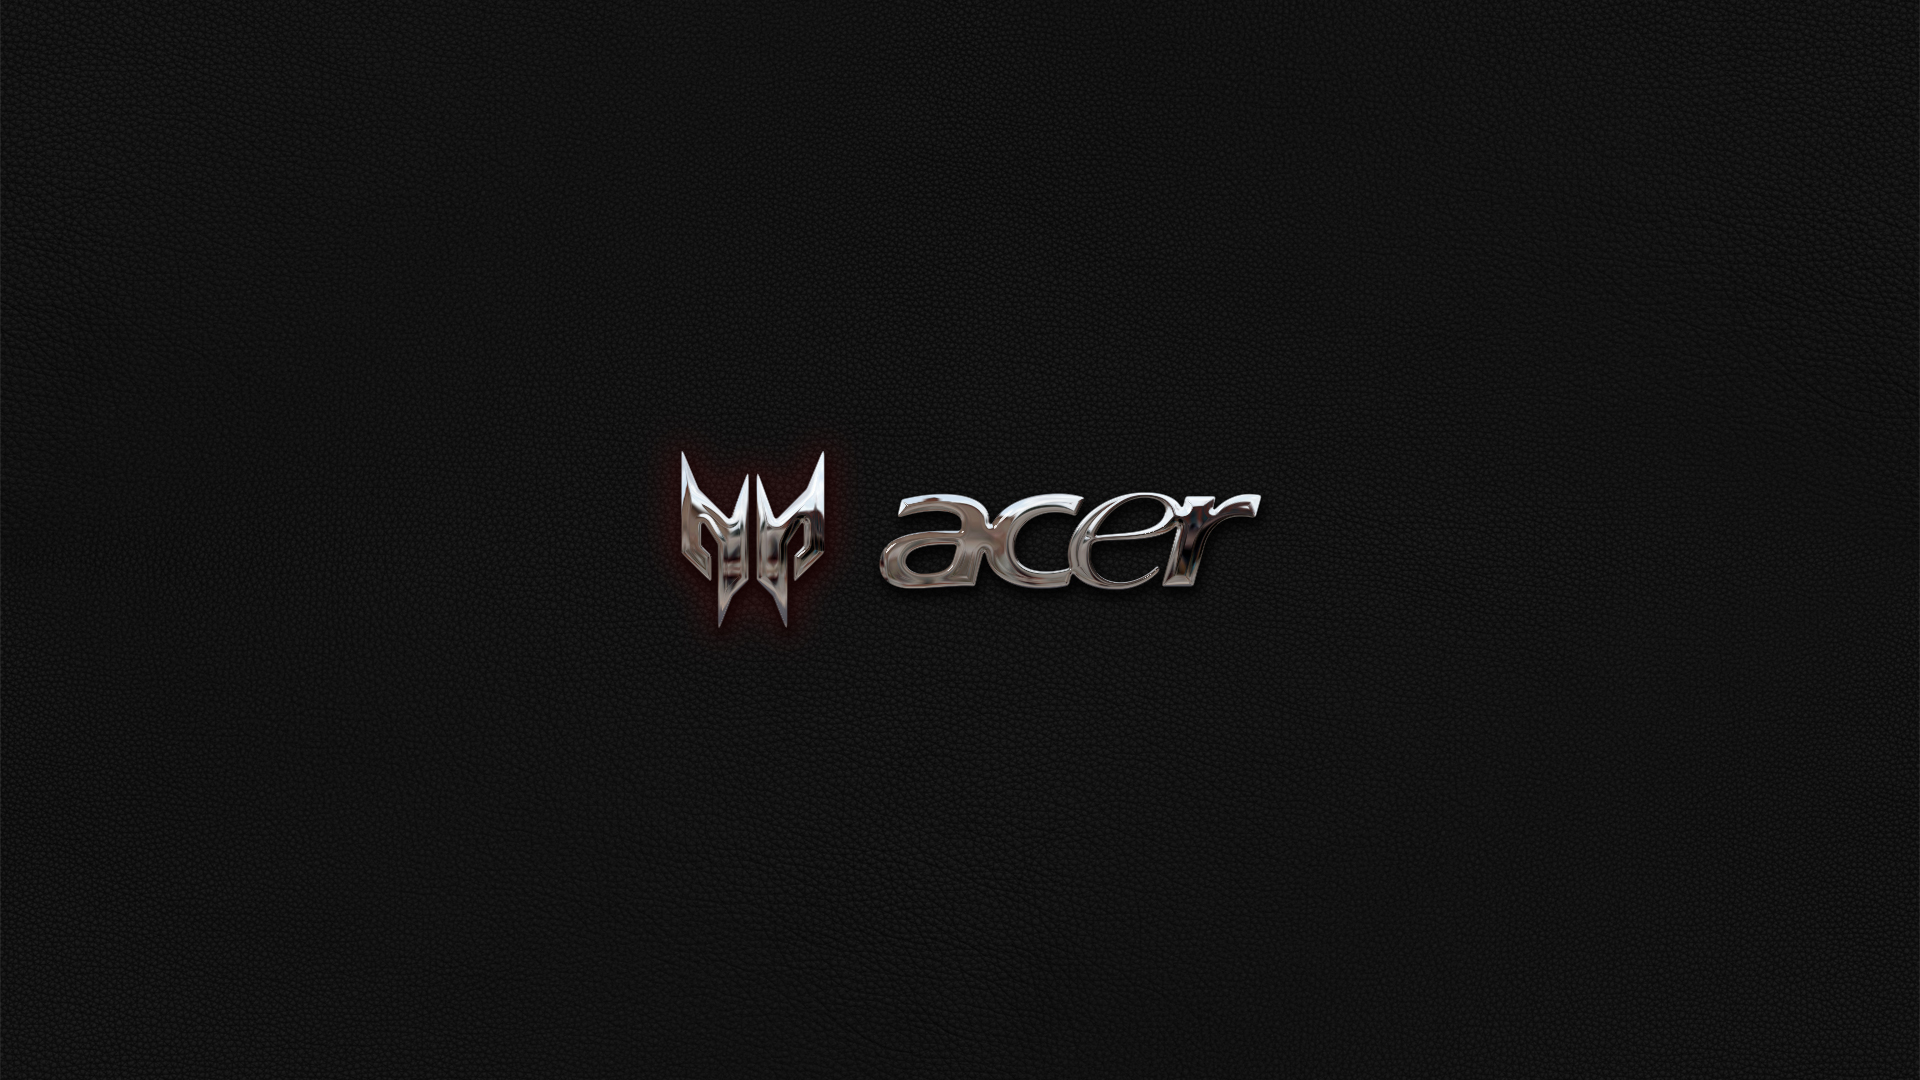 ACER Wallpaper By Stickcorporation